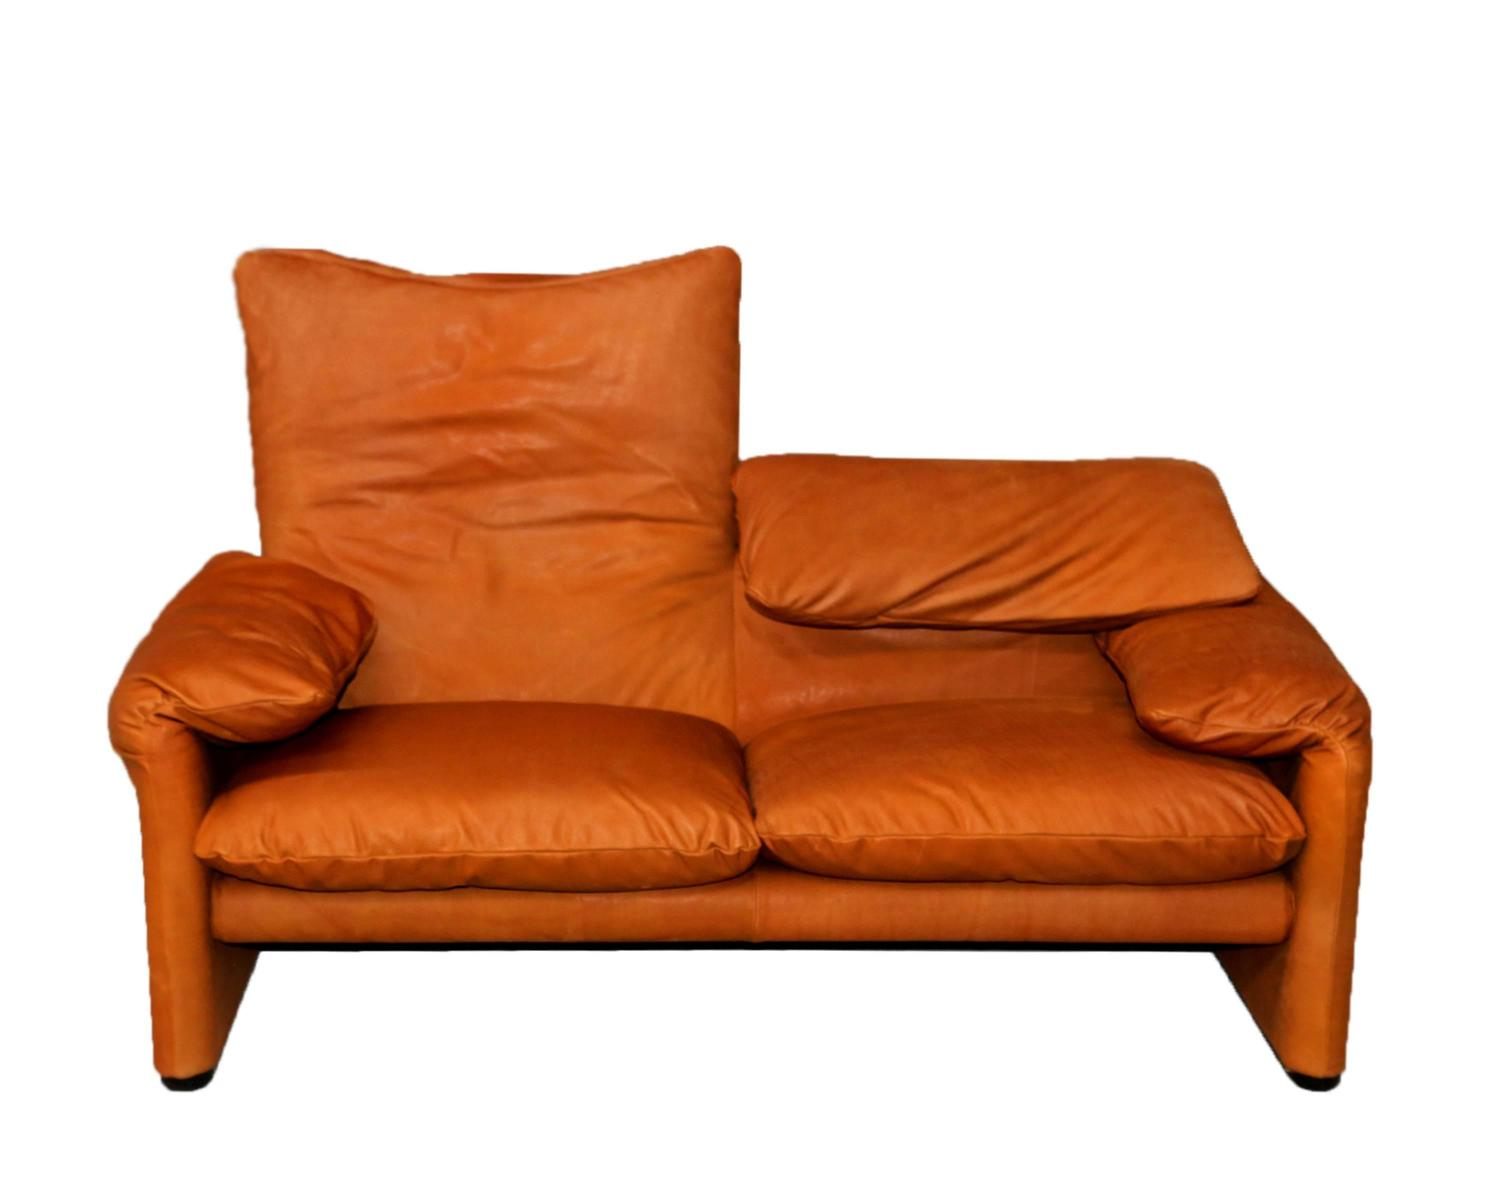 vintage cognac leather maralunga sofas by vico. Black Bedroom Furniture Sets. Home Design Ideas